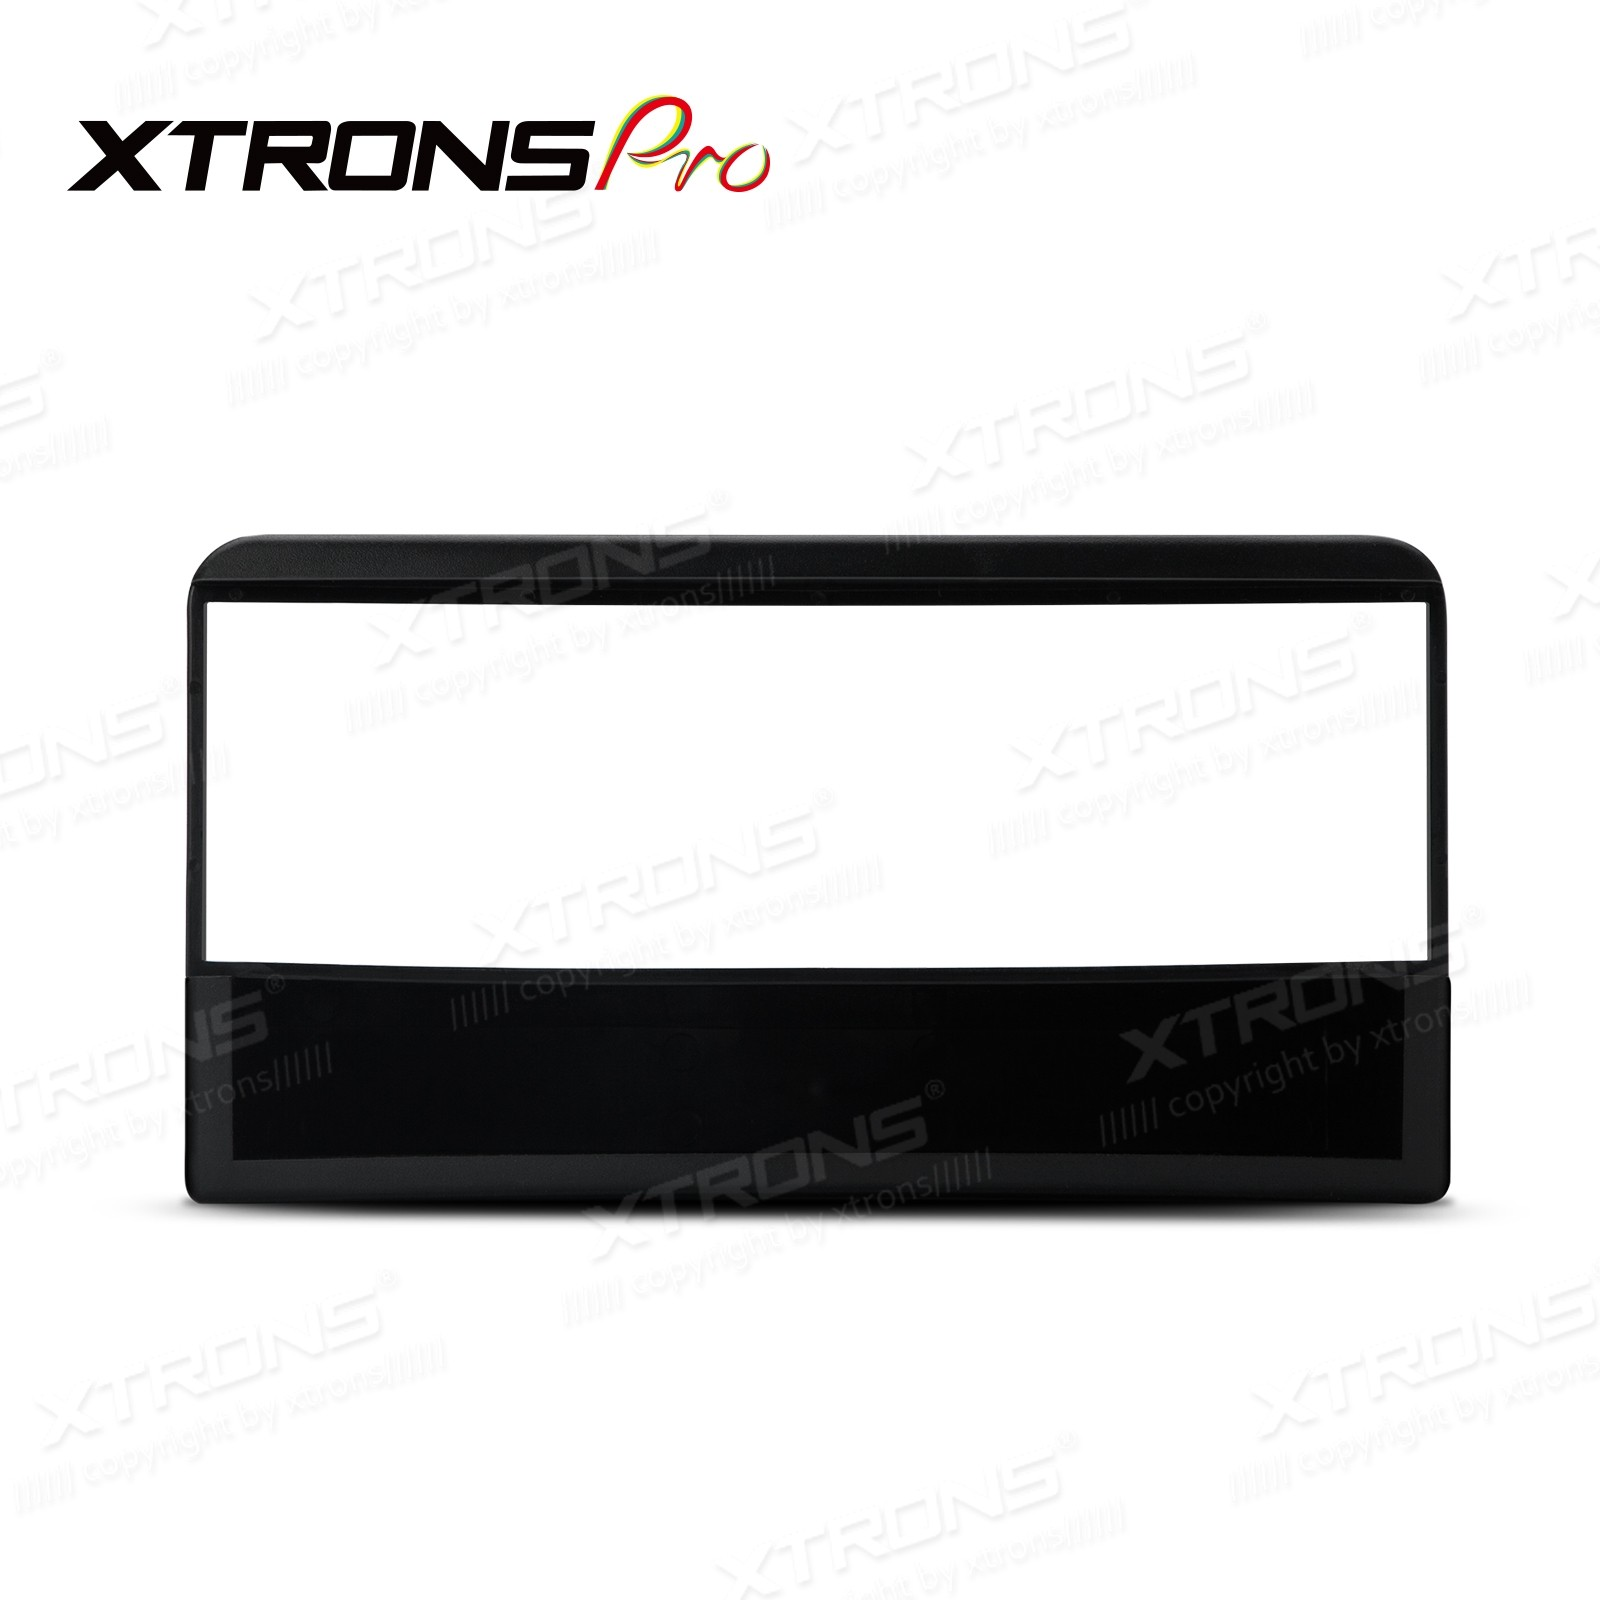 XTRONSPRO CAR RADIO / AUDIO FACIA PLATE DASH PANEL FITTING KIT for Ford / JAGUAR / Geely